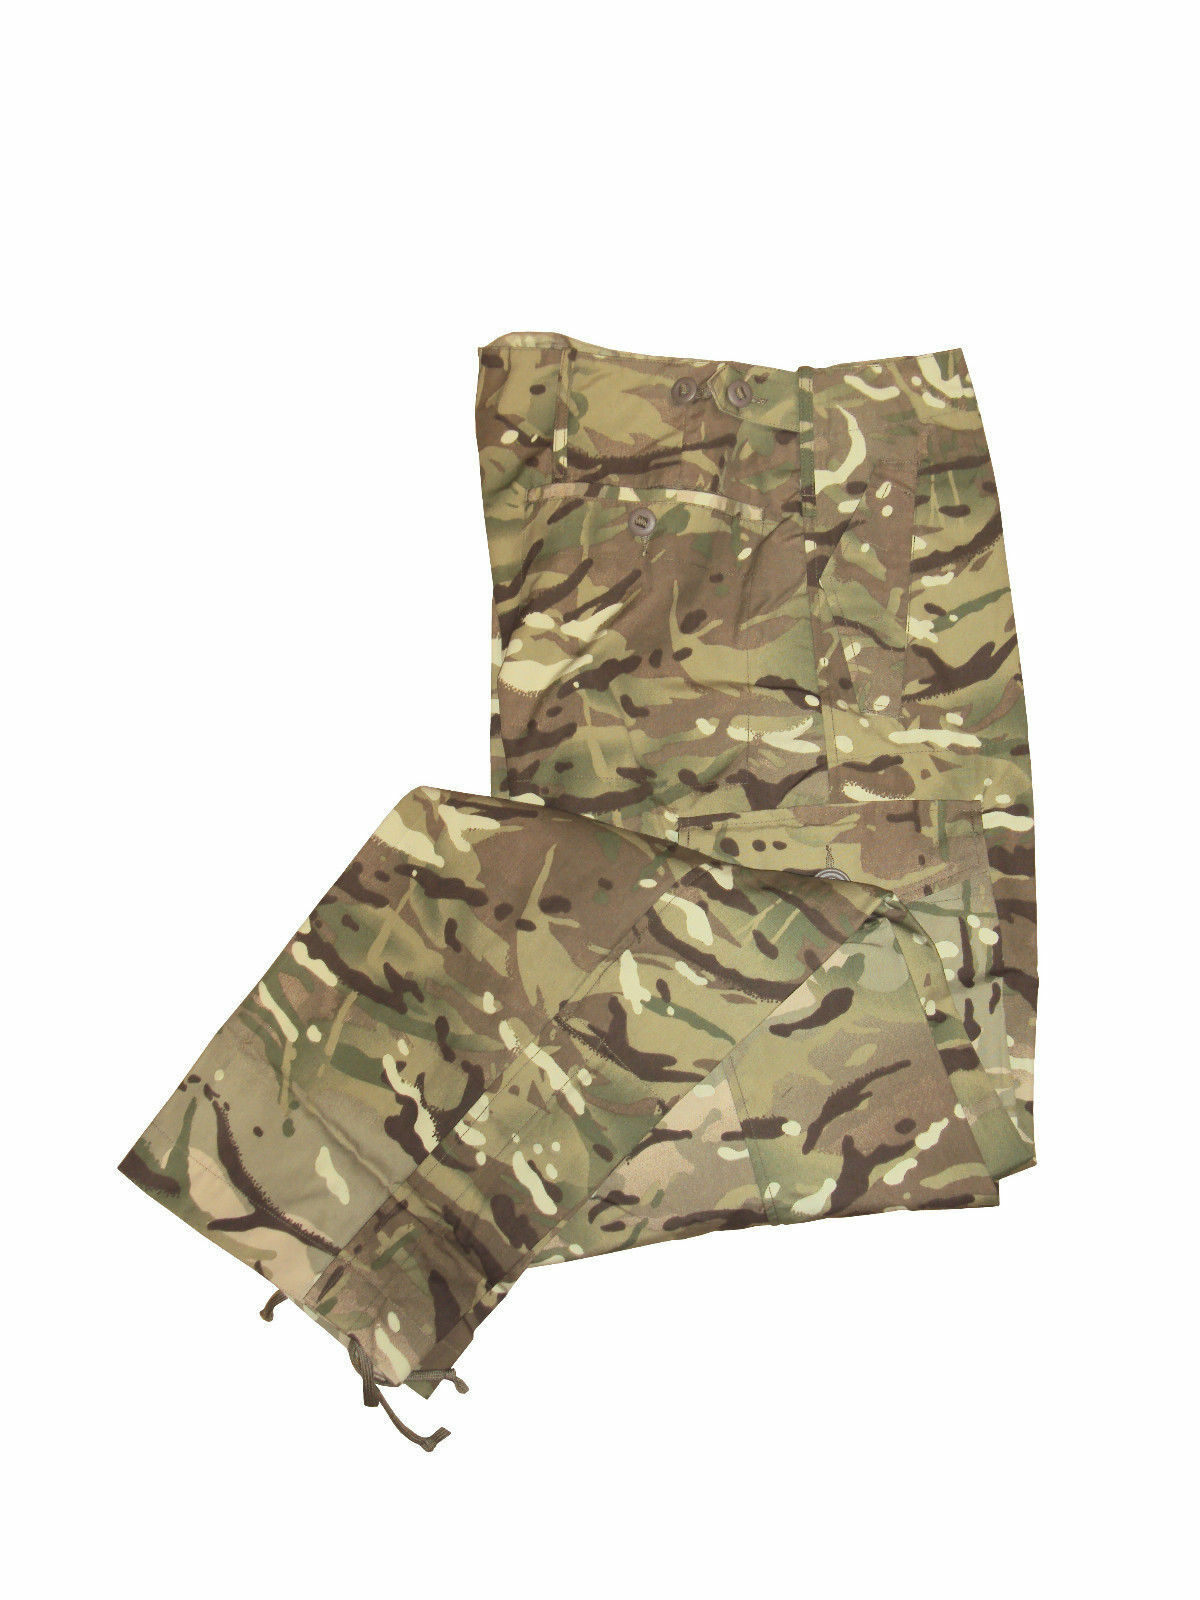 MTP Windproof Combat TROUSERS Cadet - British Army - Genuine Issue - NEW - C106